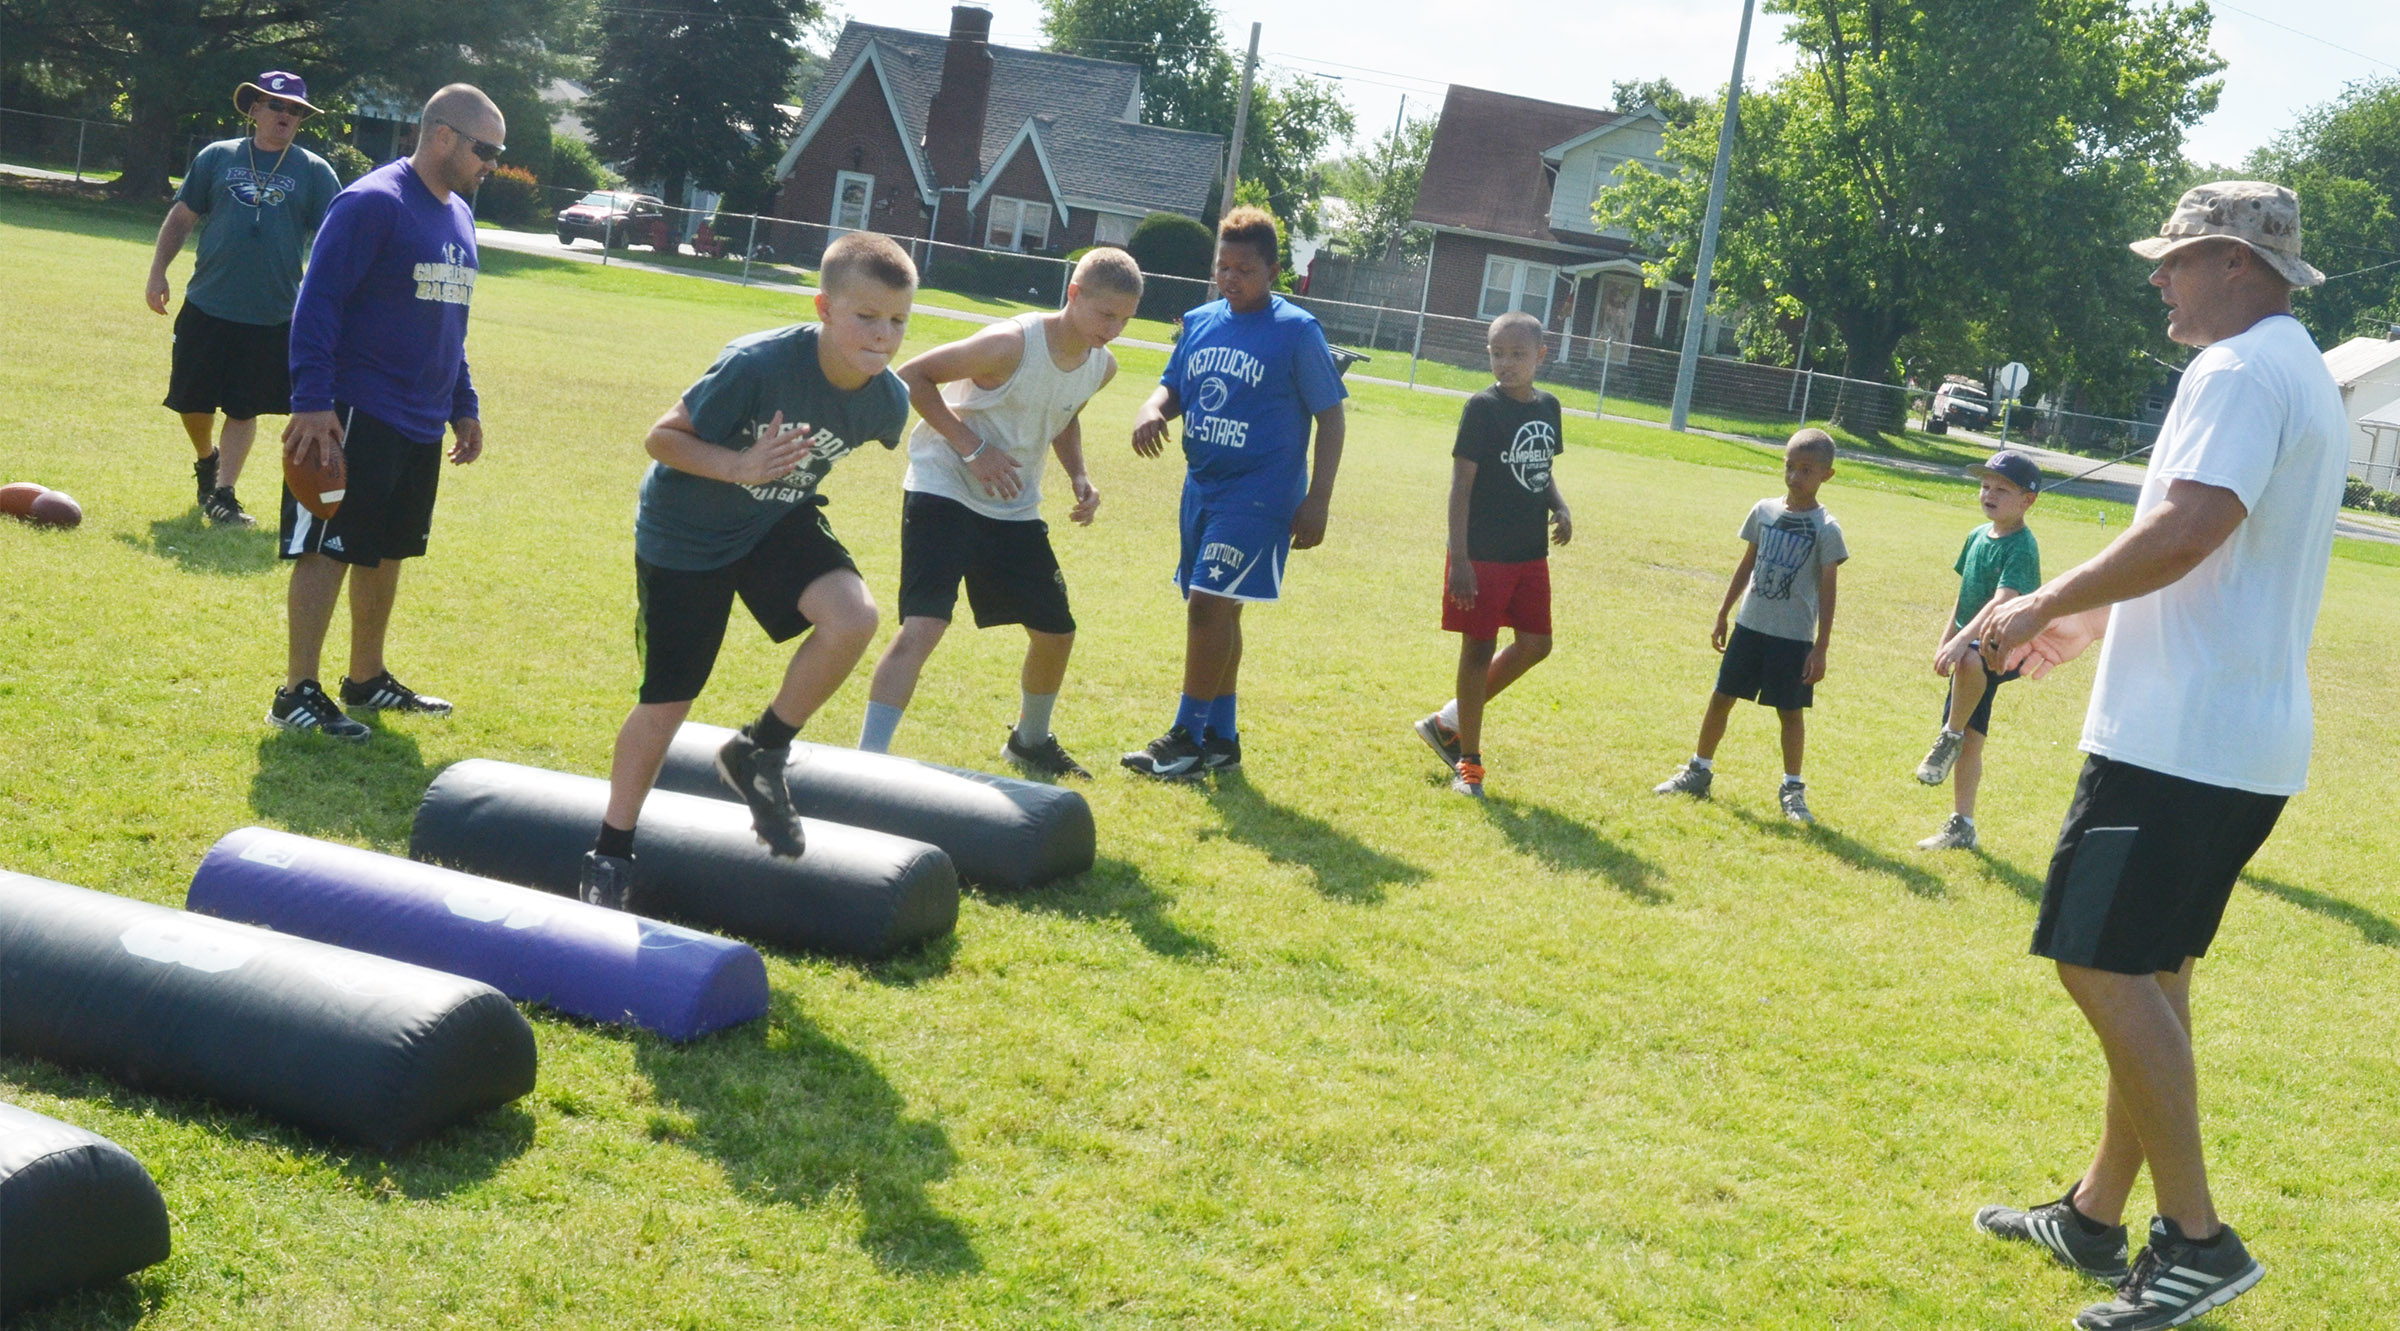 Assistant coaches, from left, Herb Wiseman, Blake Milby and Robbie Gribbins help campers with their footwork.